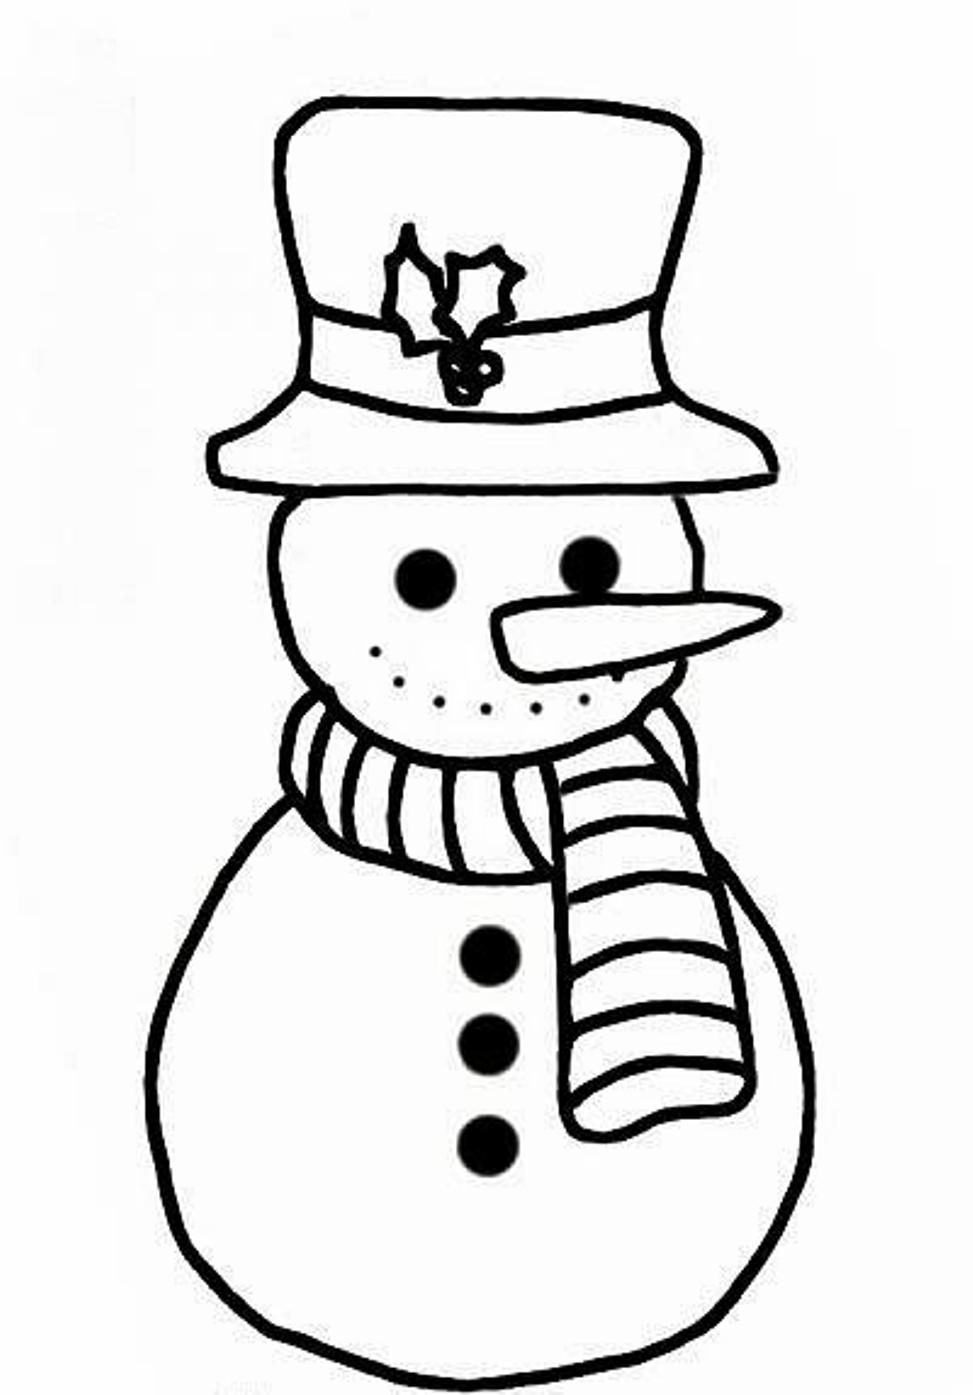 snowman coloring sheet snowman coloring pages to download and print for free snowman sheet coloring